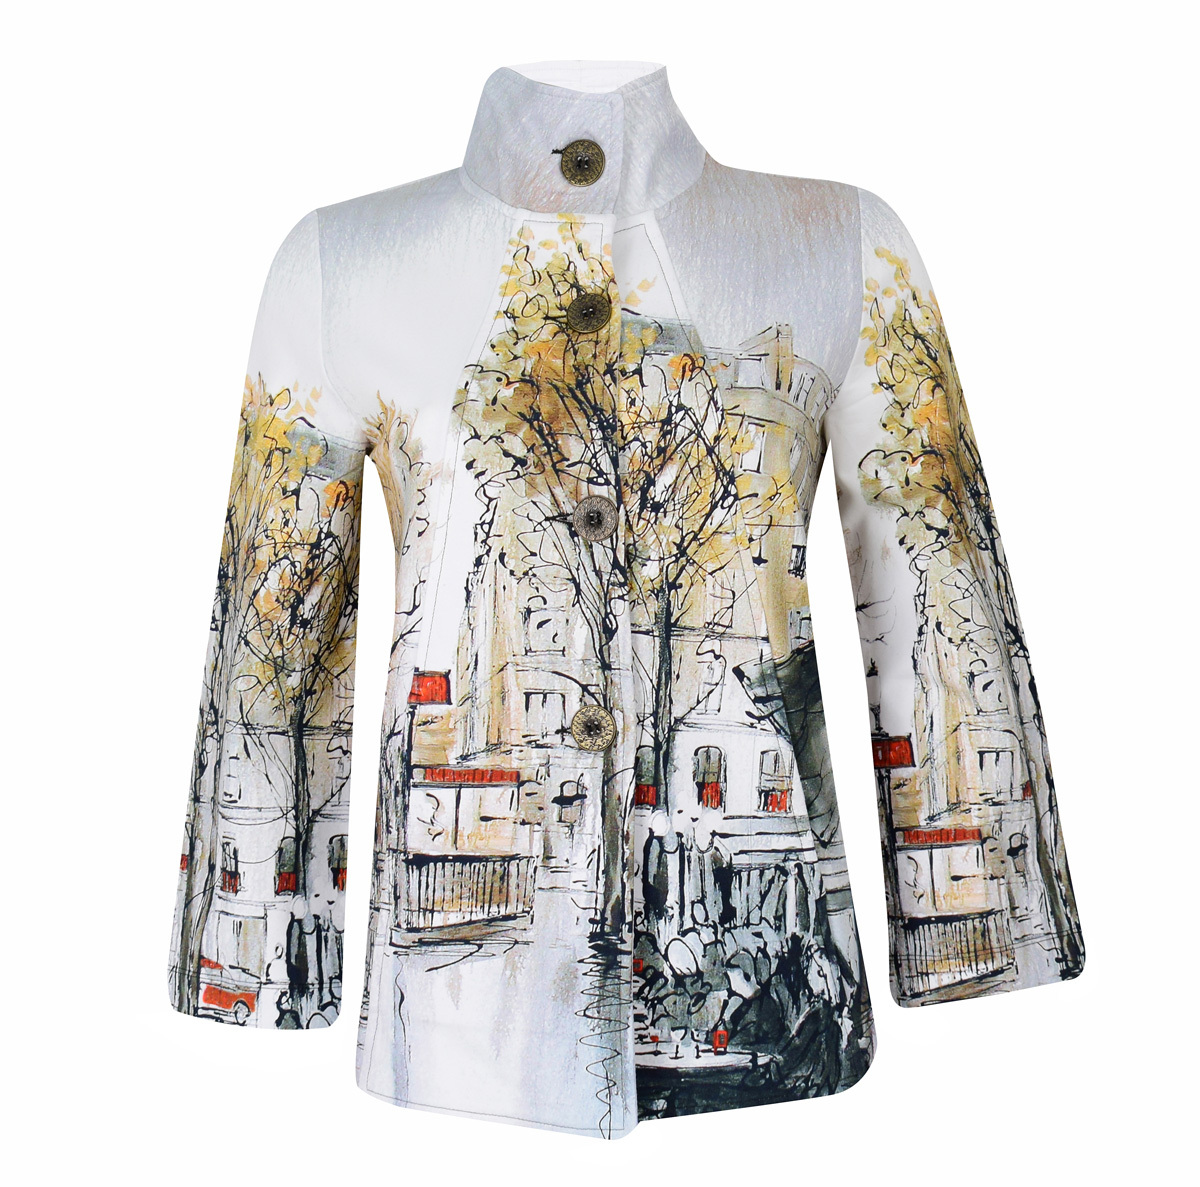 Simply Art Dolcezza: Splendid Parisian Life Swing Jacket Dolcezza_SimplyArt_59707_N